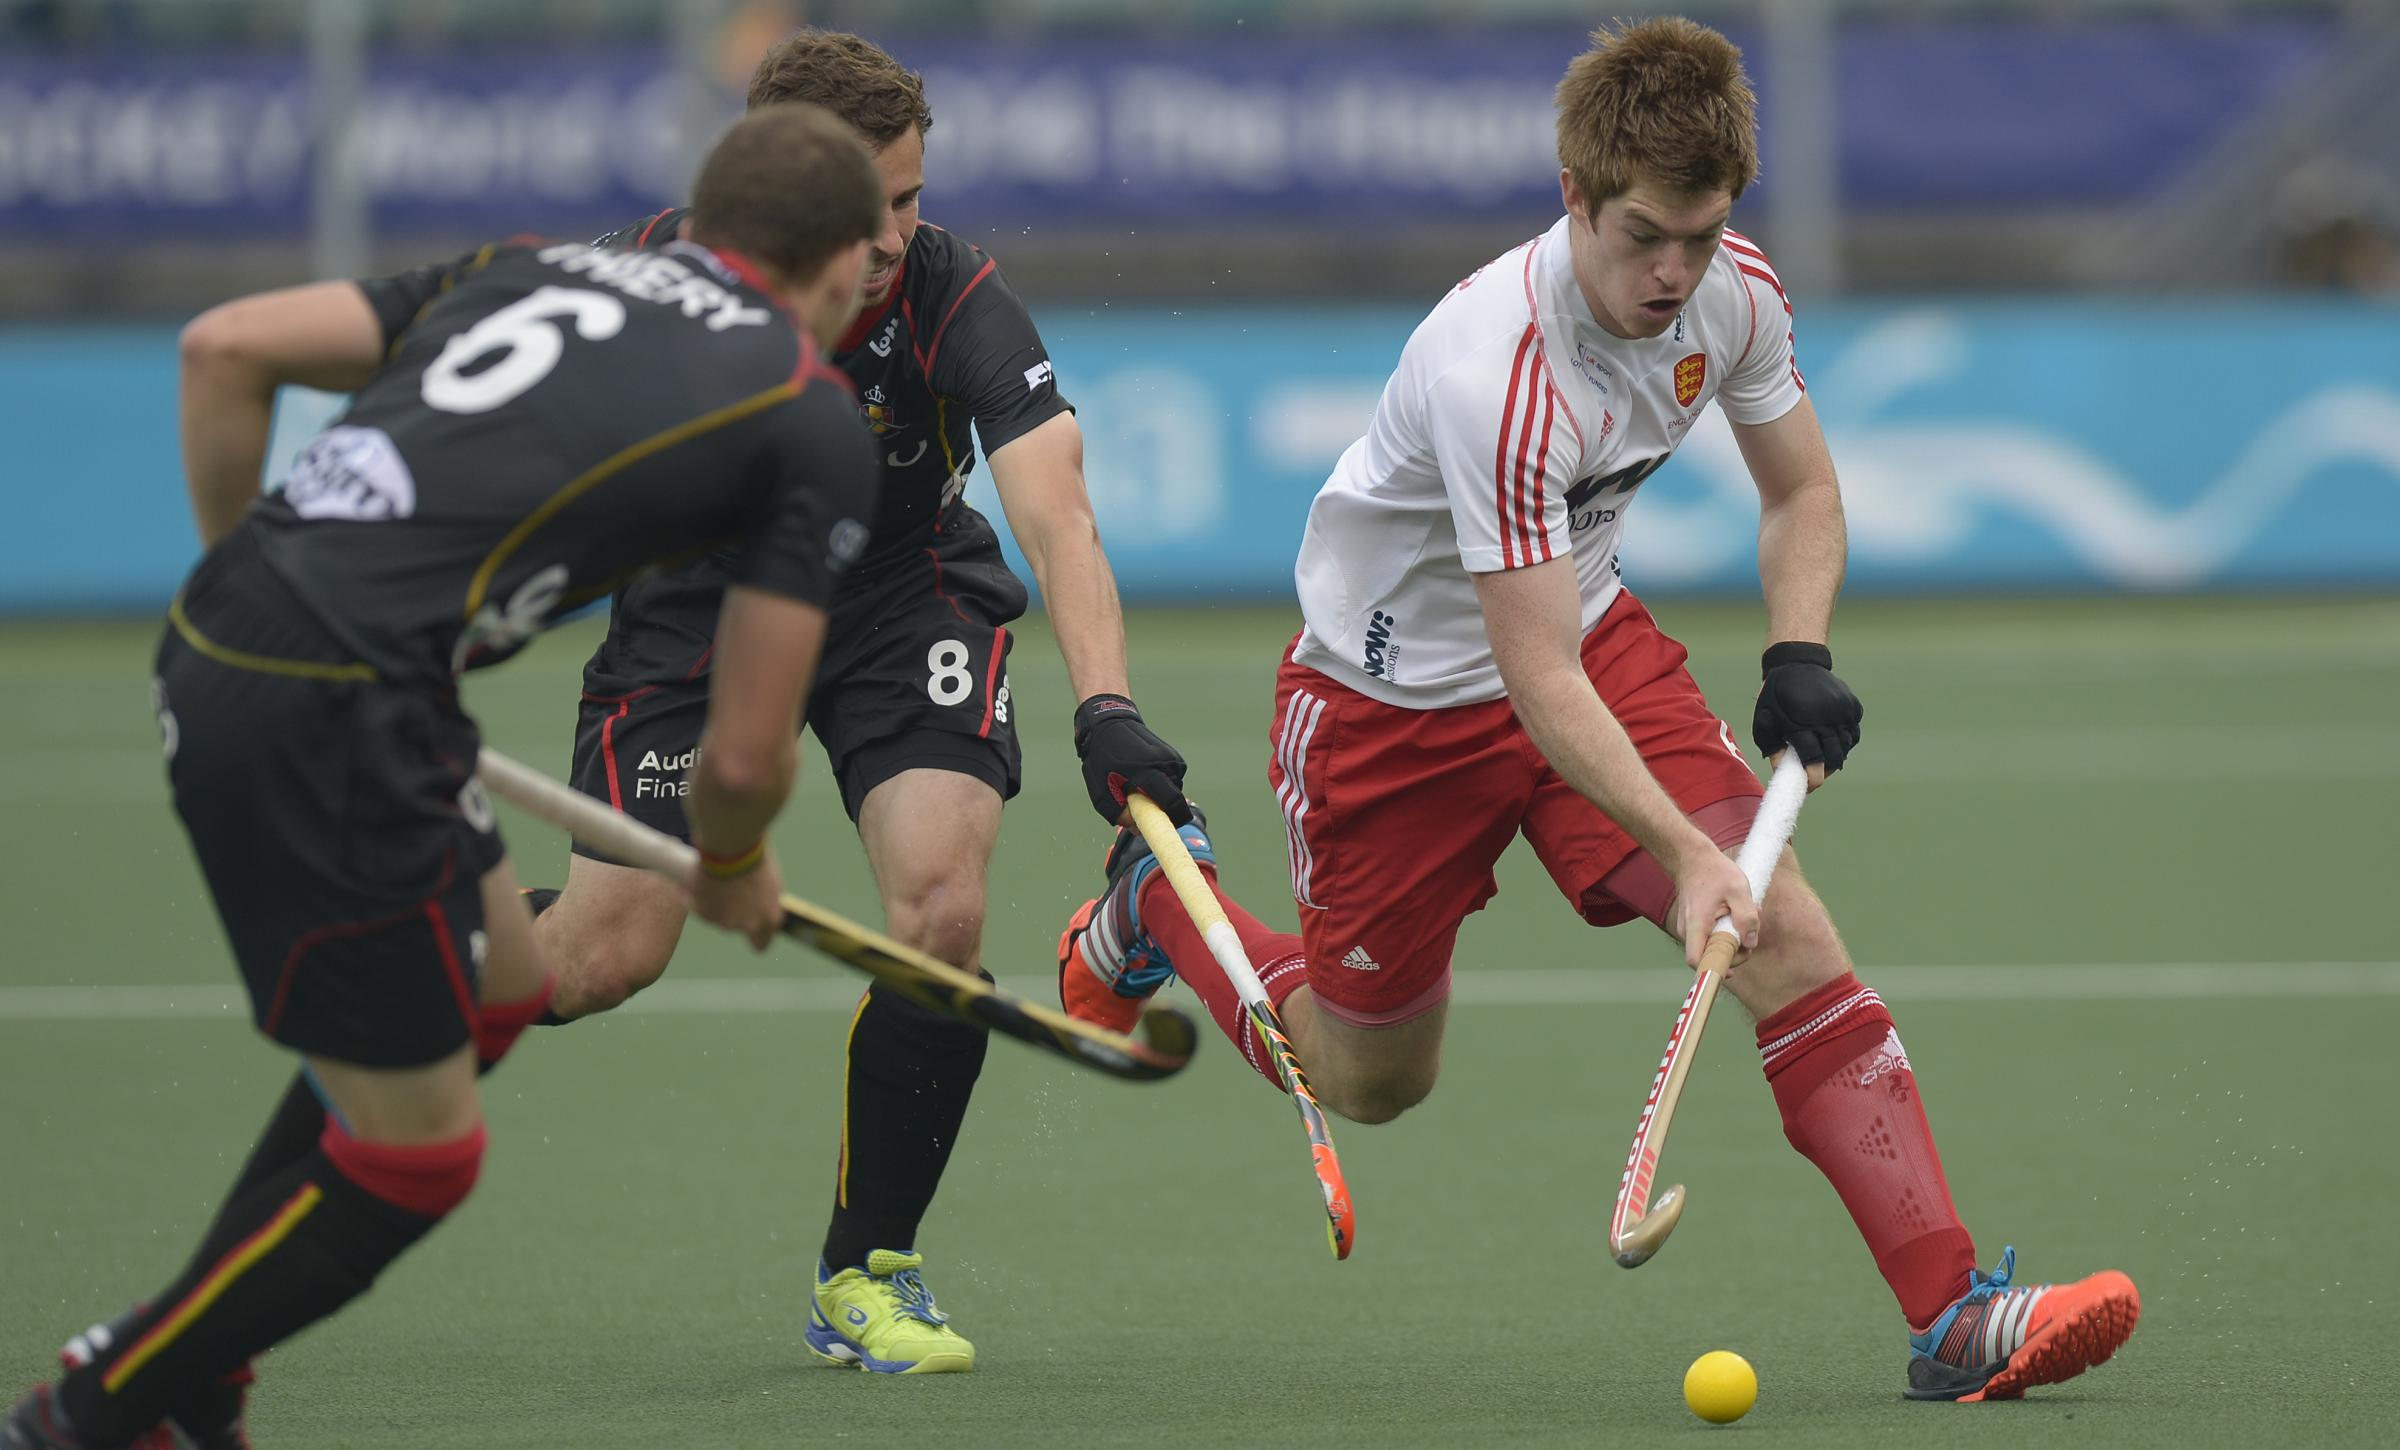 Onwards and upwards: Henry Weir in action during England's 3-2 win over Belgium at the Hockey World Cup in The Hague